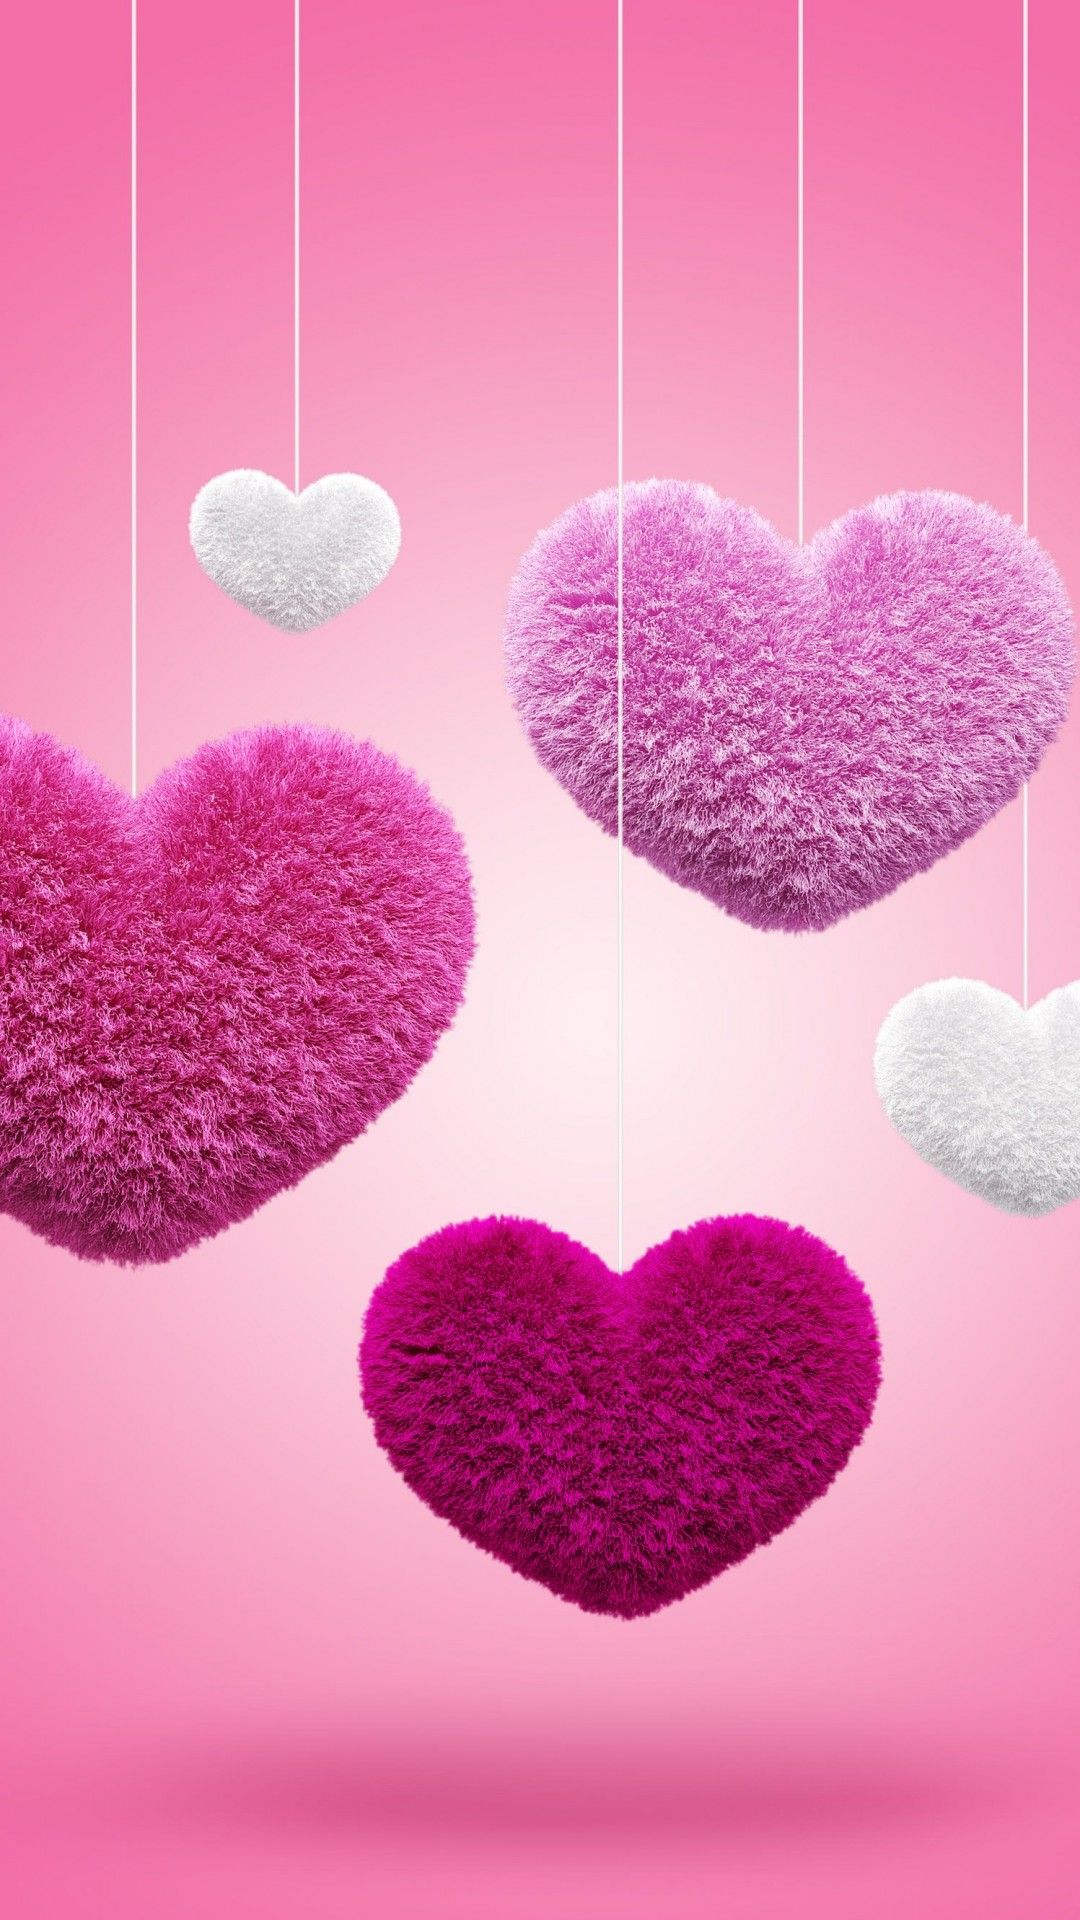 Fluffy Hearts Wallpaper for SAMSUNG Galaxy Note 3